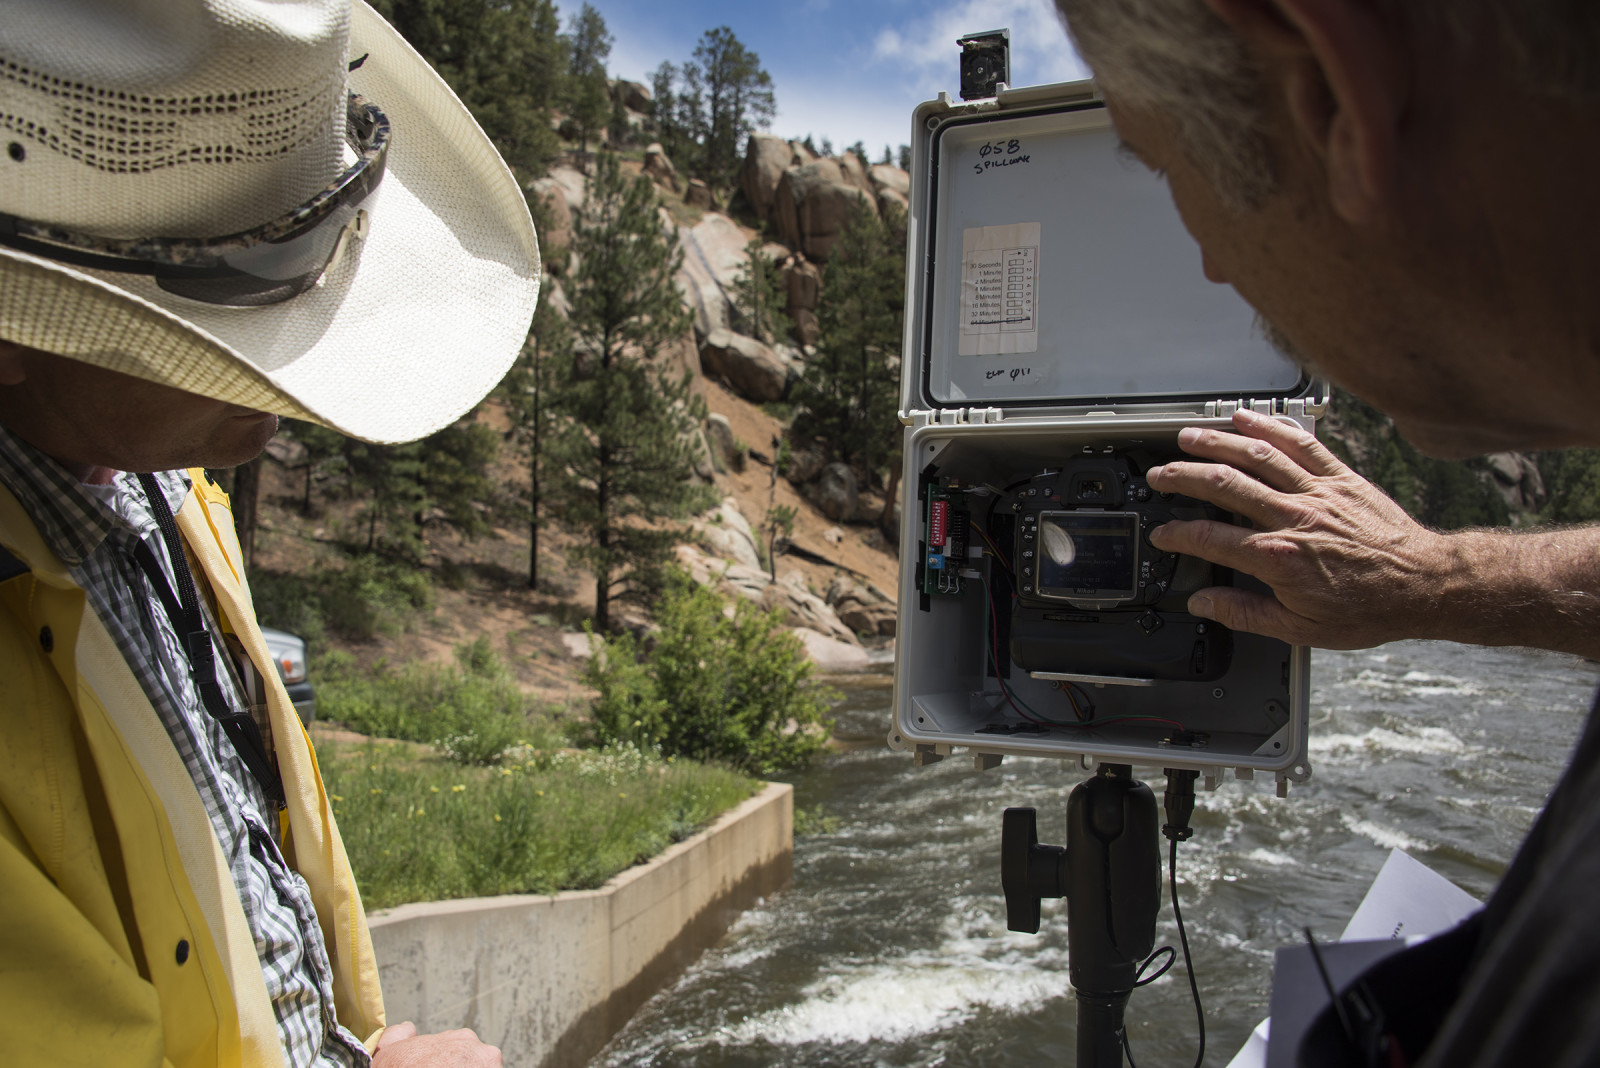 PBT camera technition, Jeff Dale shows a Denver Water employee how the timelapse cameras work. (Mariah Lundgren)